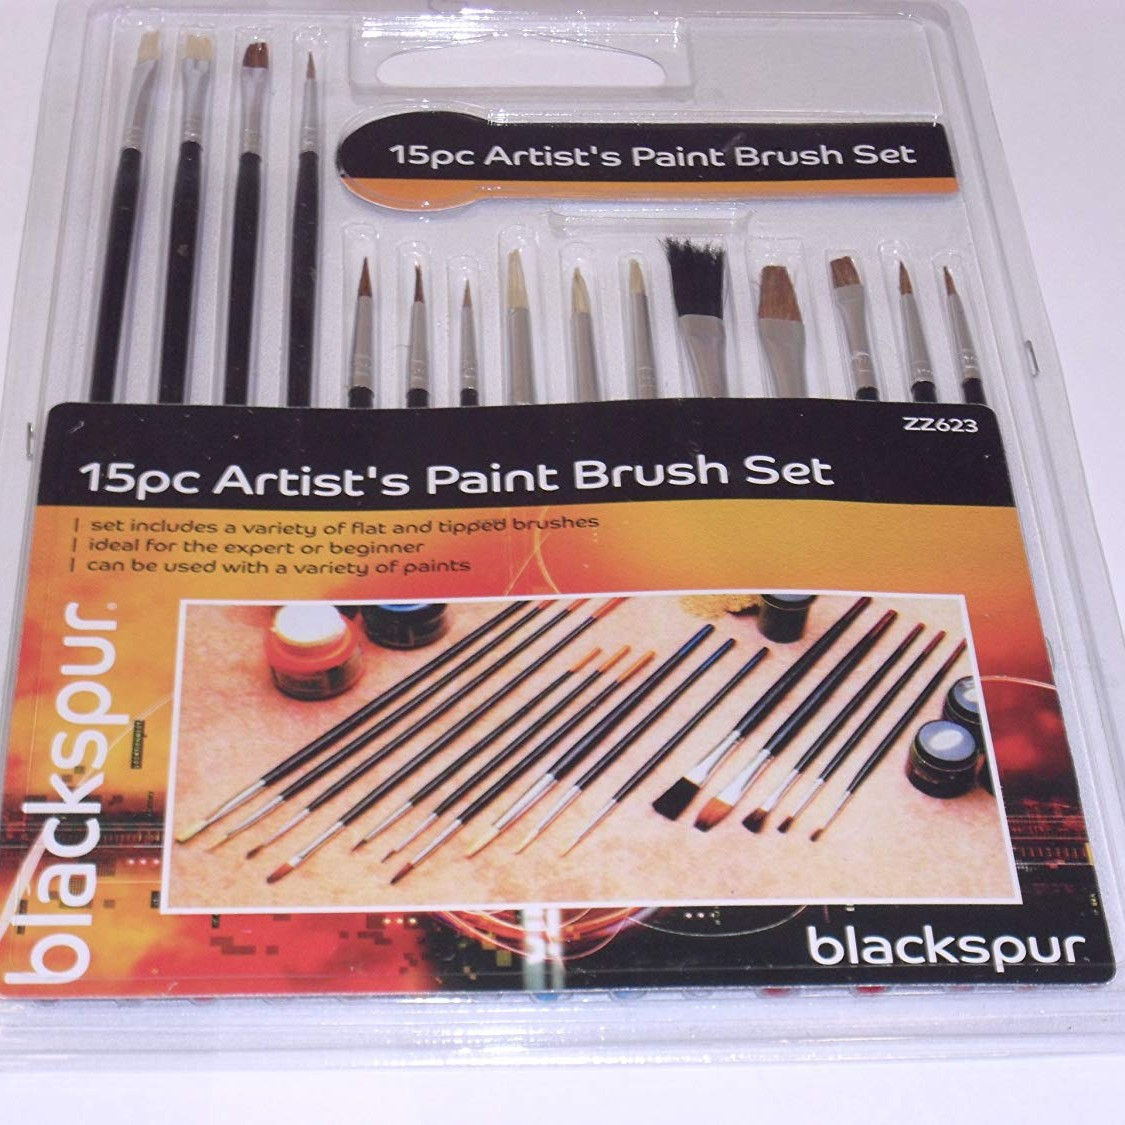 Blackspur 15Pc Artist'S Paint Brush Set